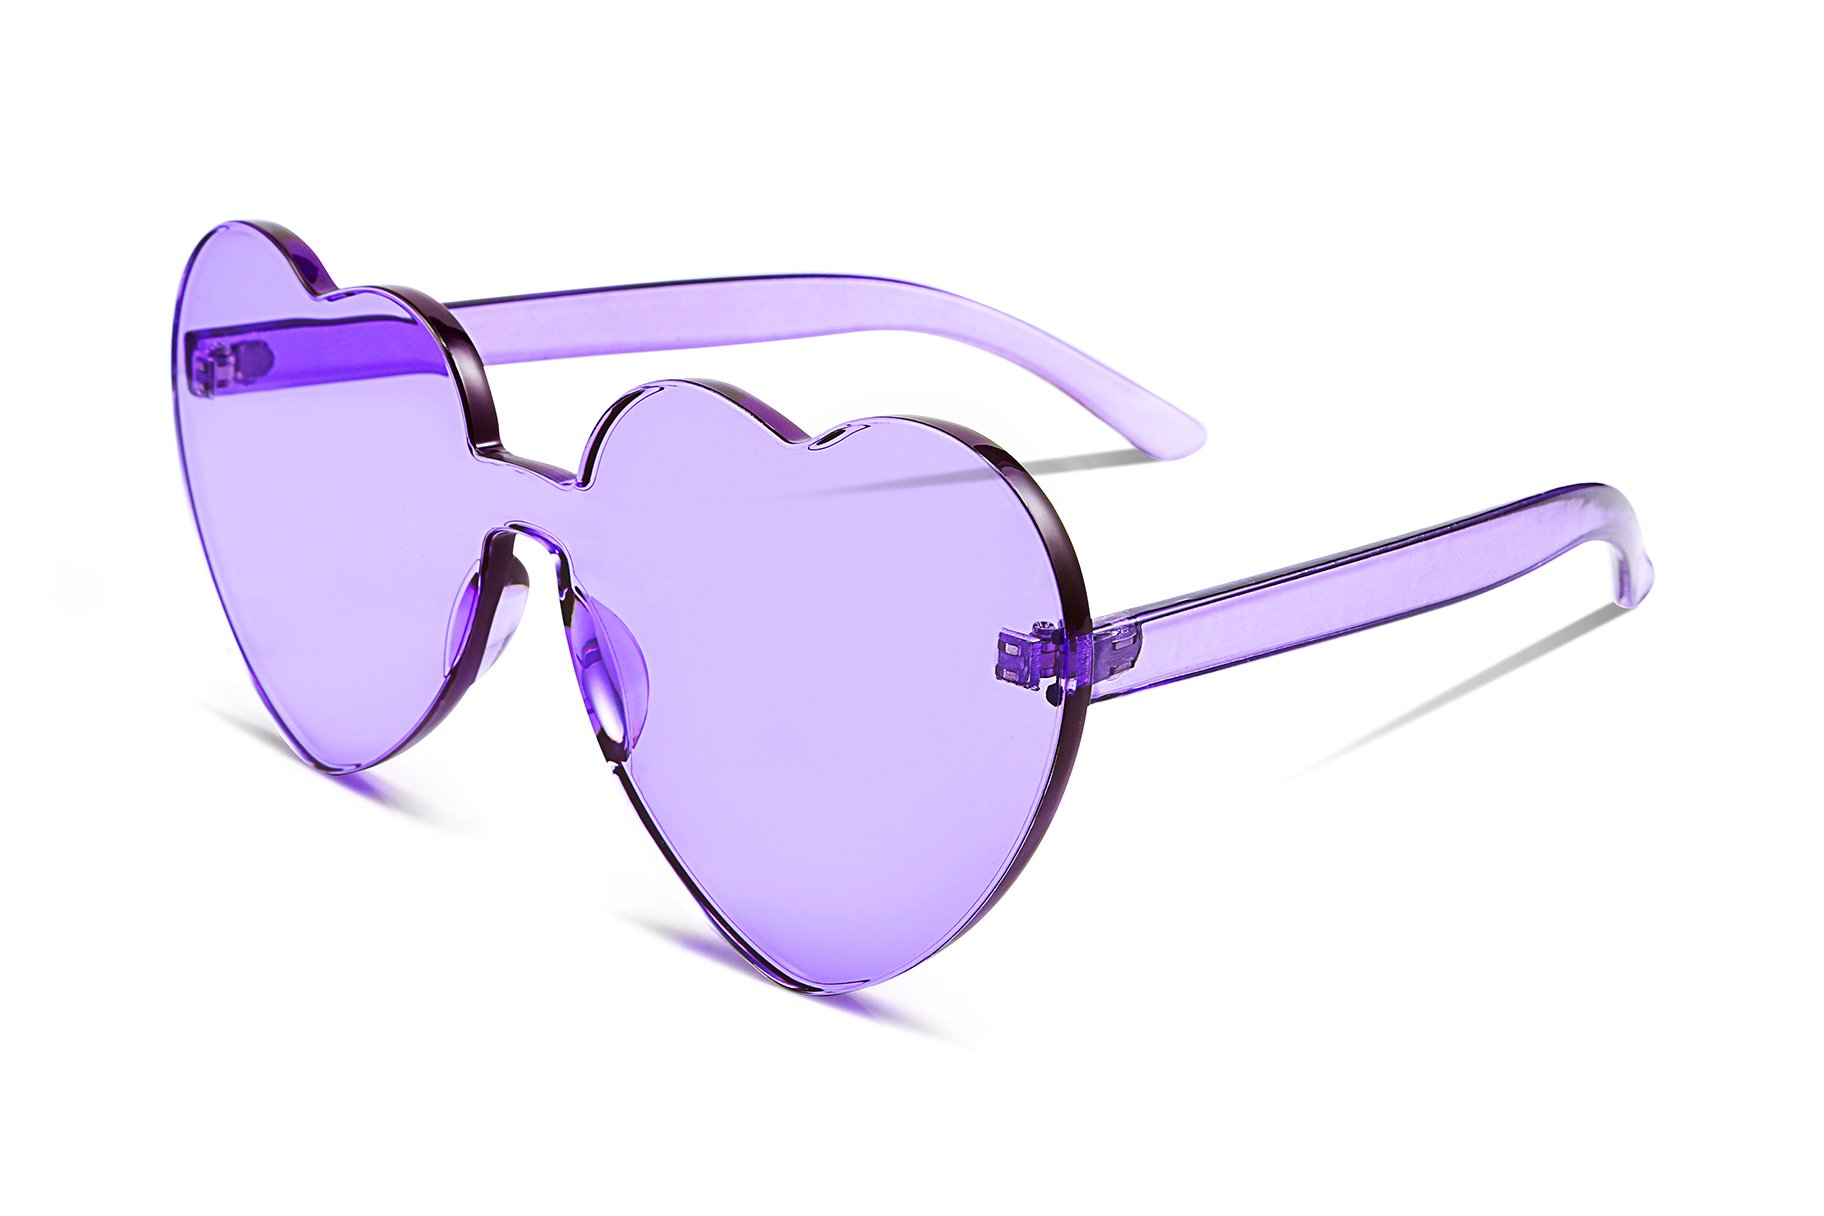 FEISEDY Heart Shaped Love Sunglasses Rimless One Piece Stylish Transparent Lens B2419